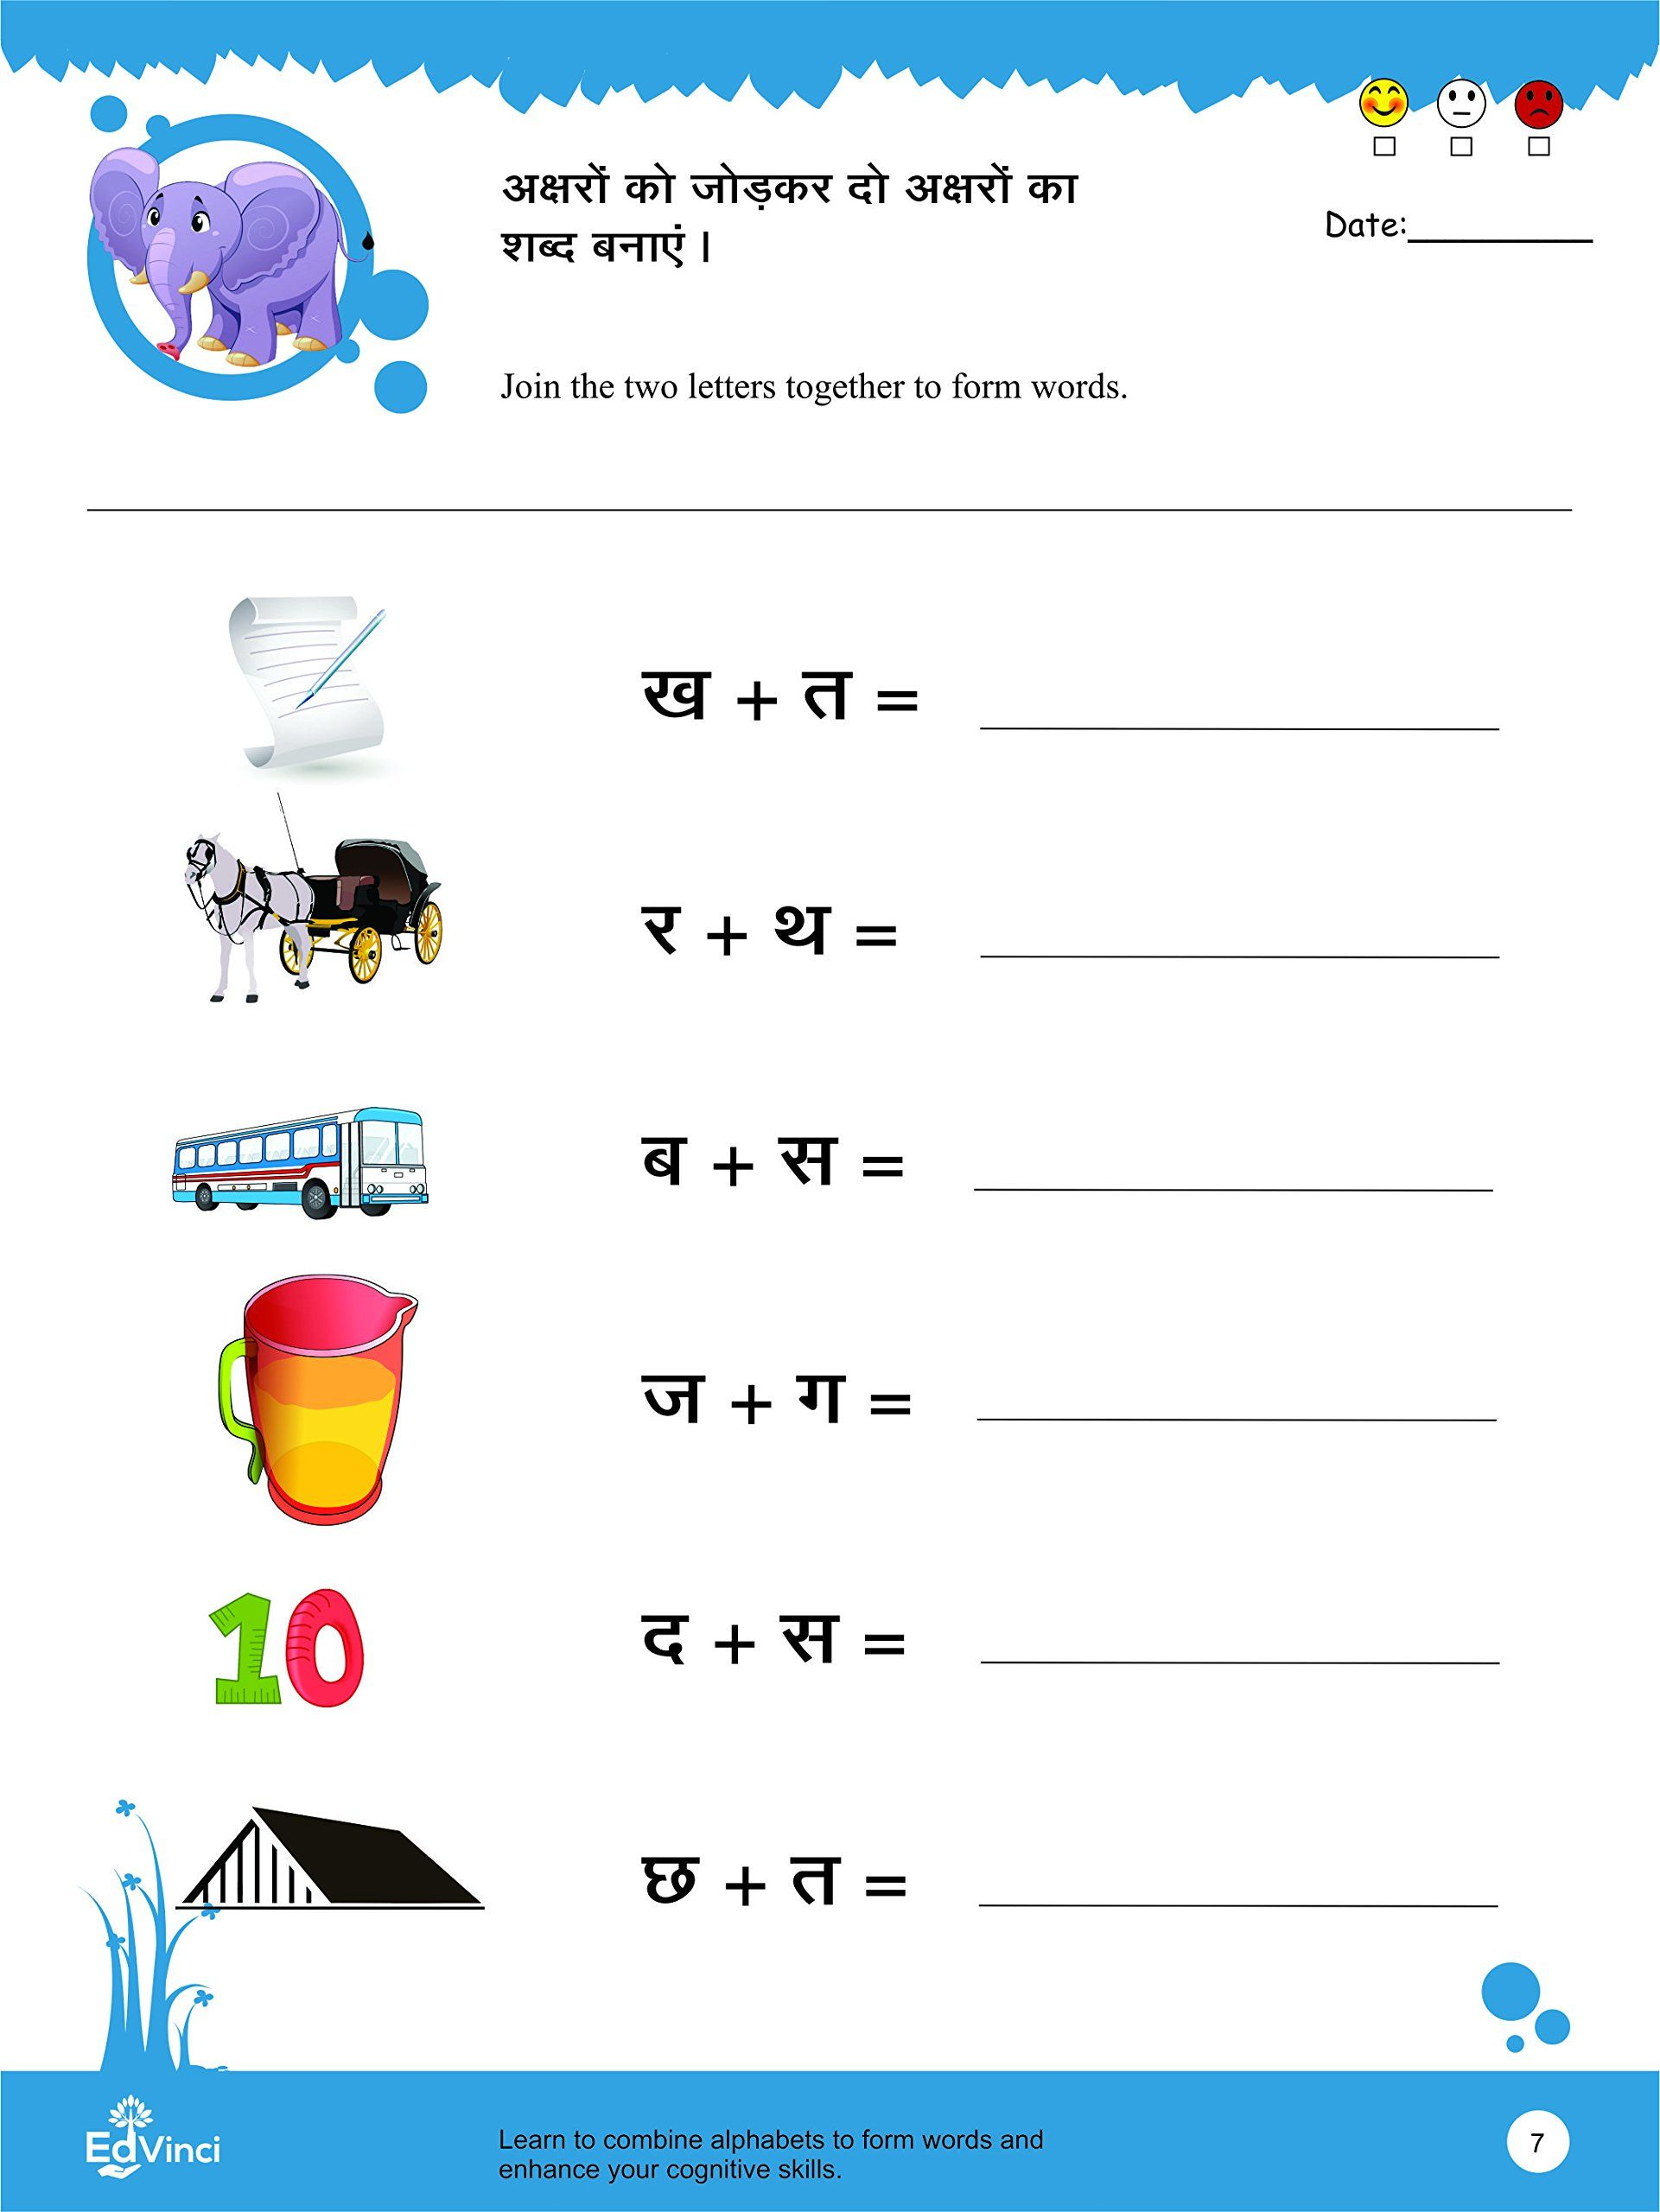 hindi worksheets grade 1 Hindi worksheets, Fun